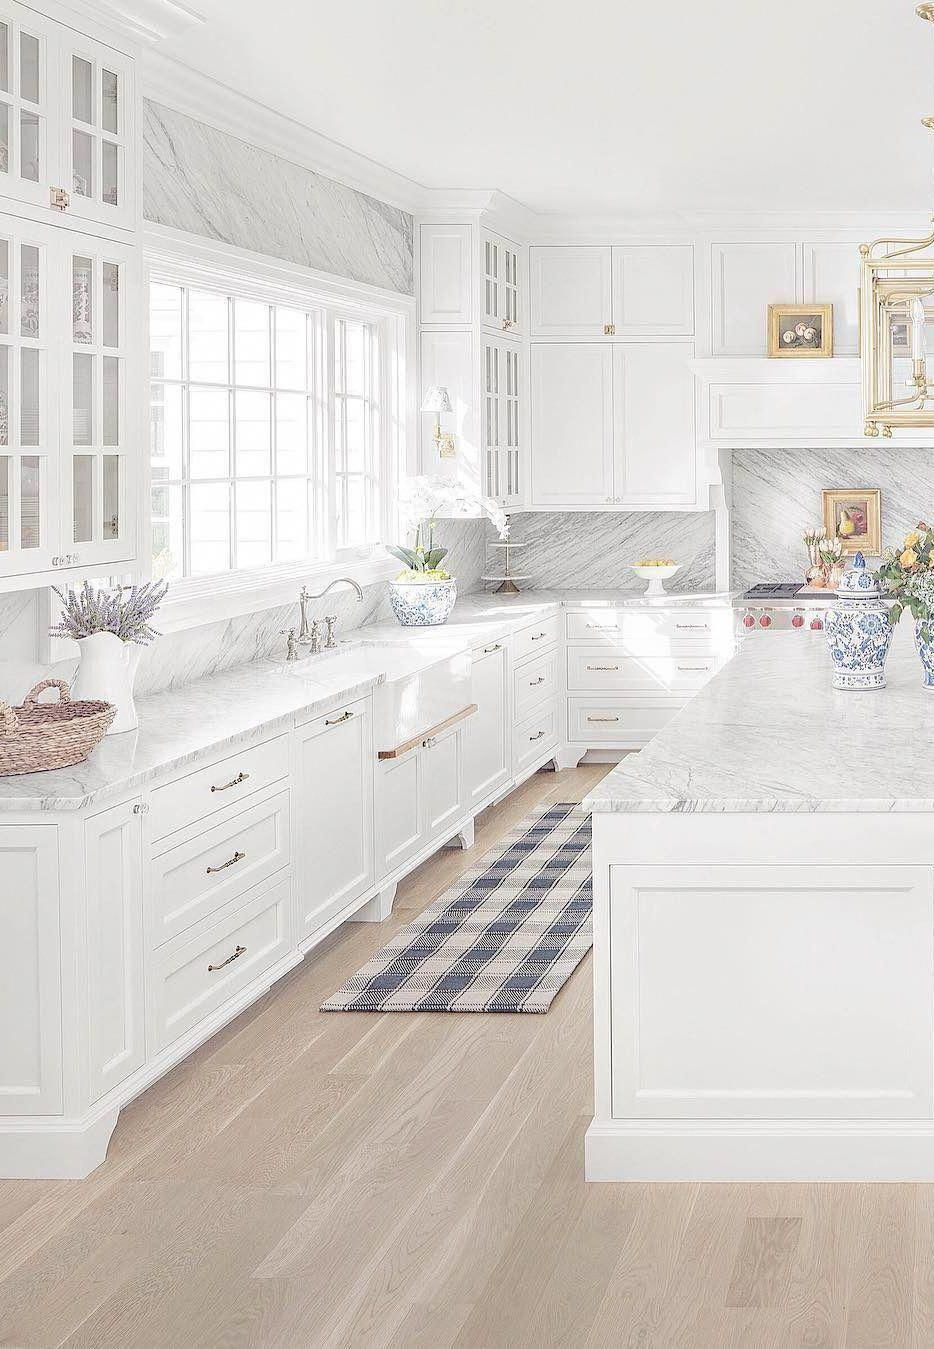 34 Beauty Latest Kitchen Design Trends Ideas For 2019 Part 13 Kitchen Design Kitchen Desig In 2020 White Kitchen Design Latest Kitchen Designs Kitchen Design Trends